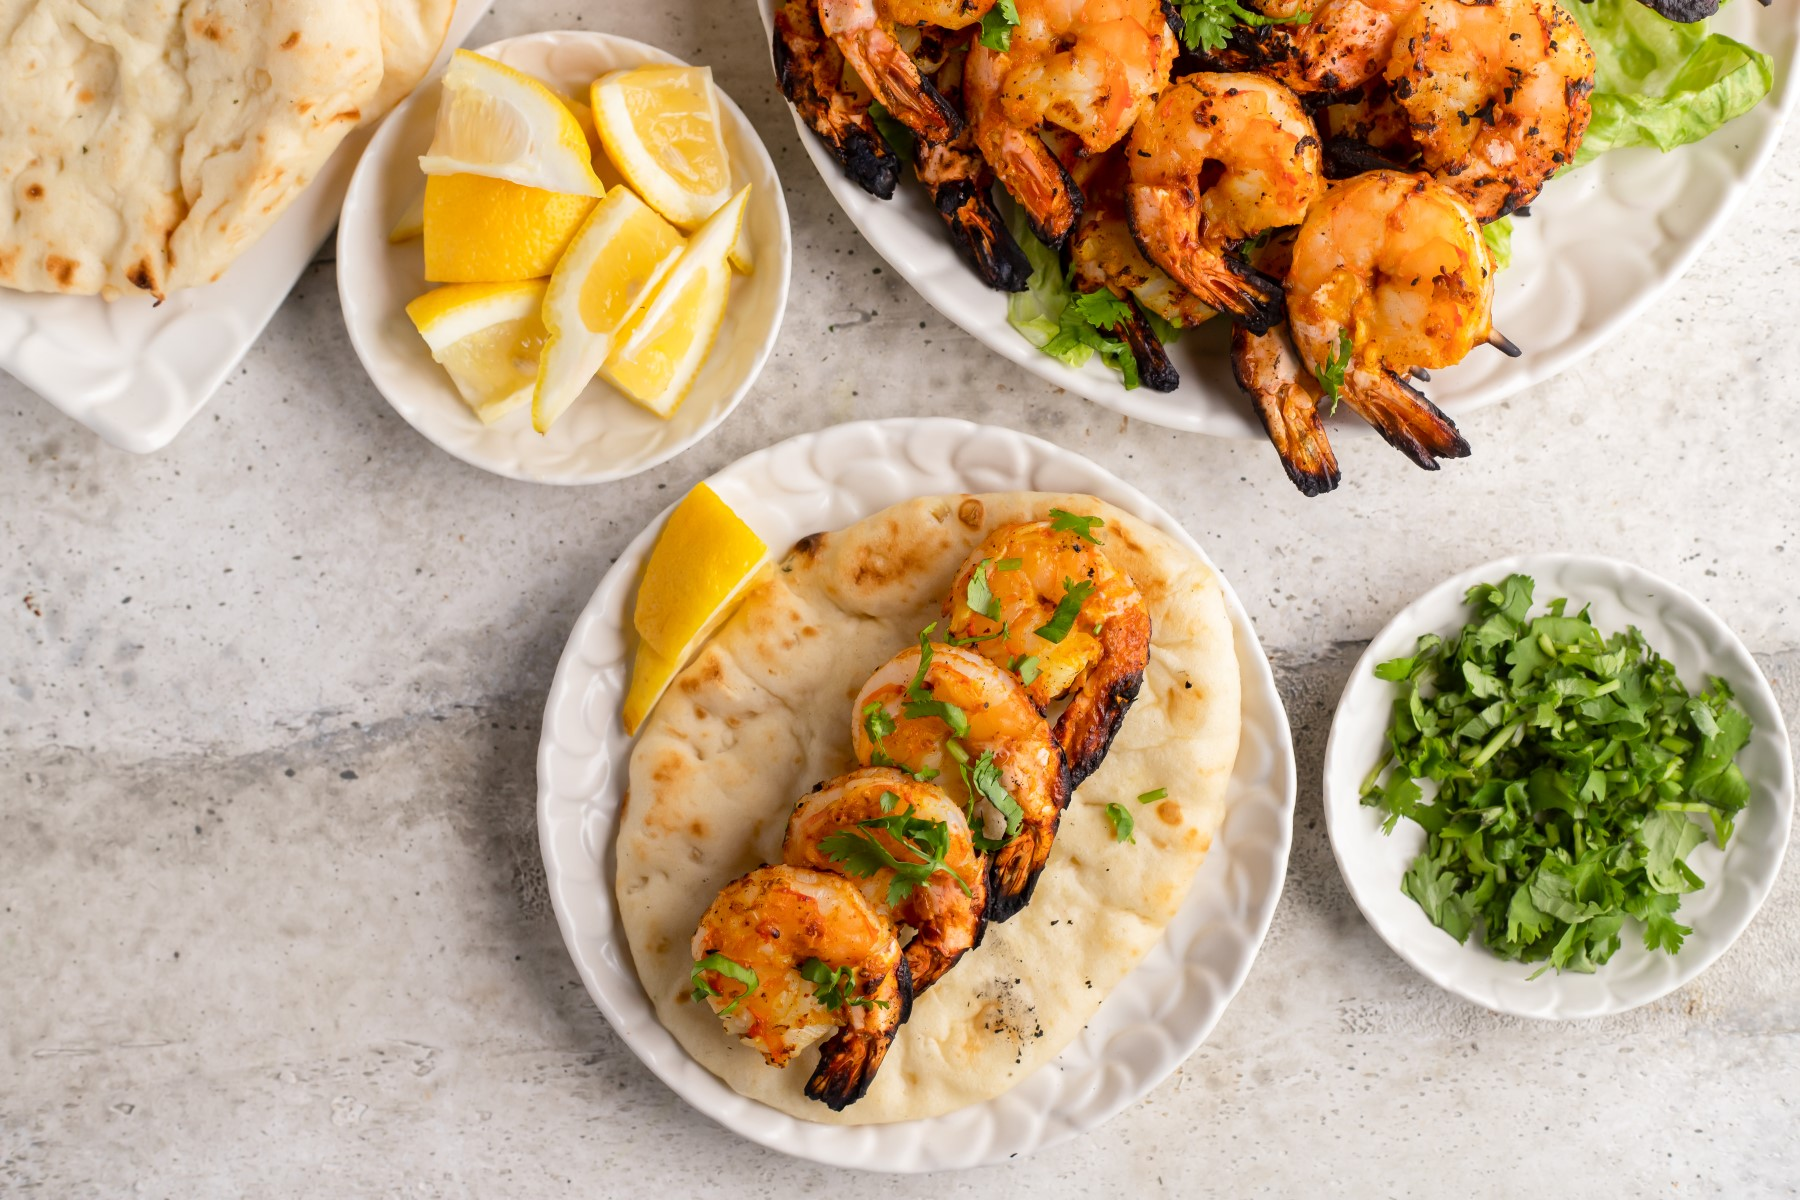 Grilled Tandoori Shrimp on naan bread with chopped parsley and lemon wedges